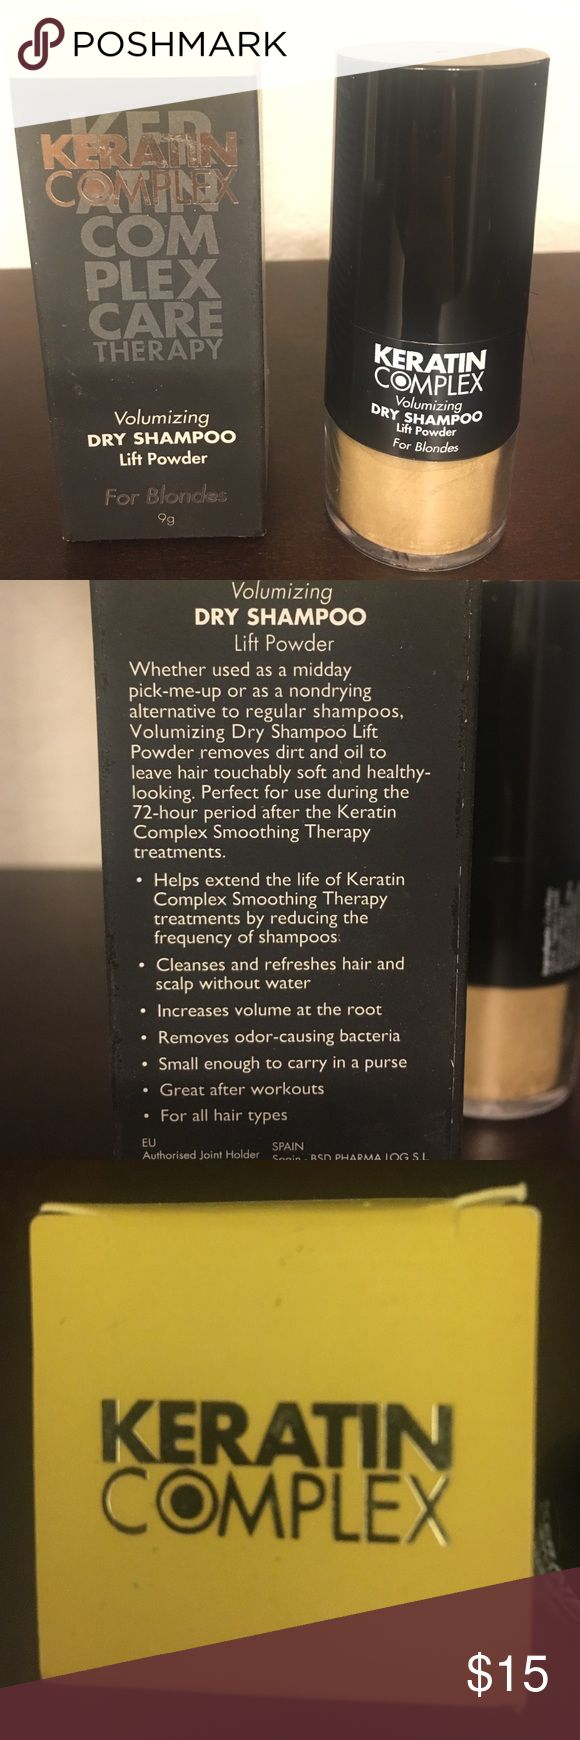 Dry Shampoo Keratin Complex Dry shampoo for Blondes. I'm not blonde anymore so I'm using a different dry shampoo. This one is brand new and never been used. Other